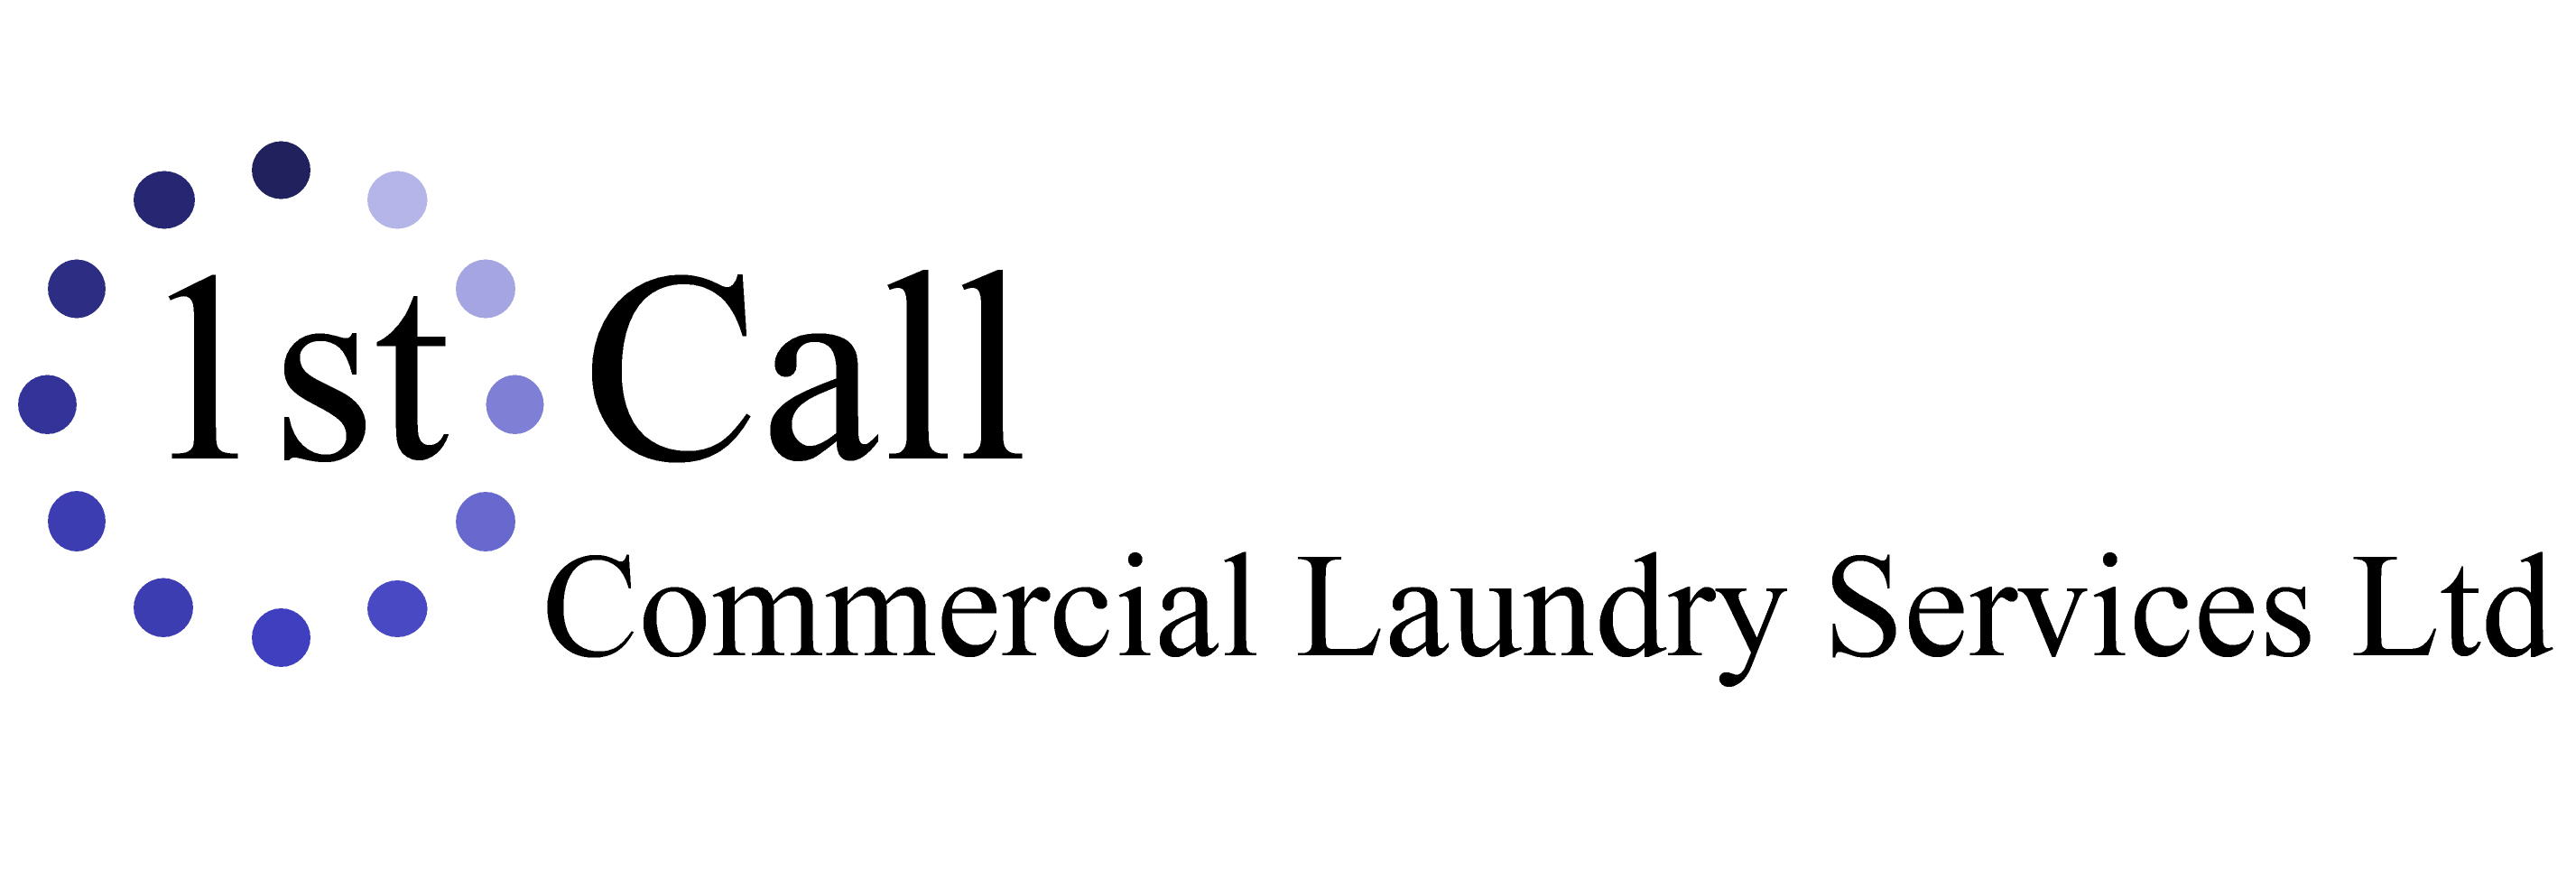 1st Call Commercial Laundry Services